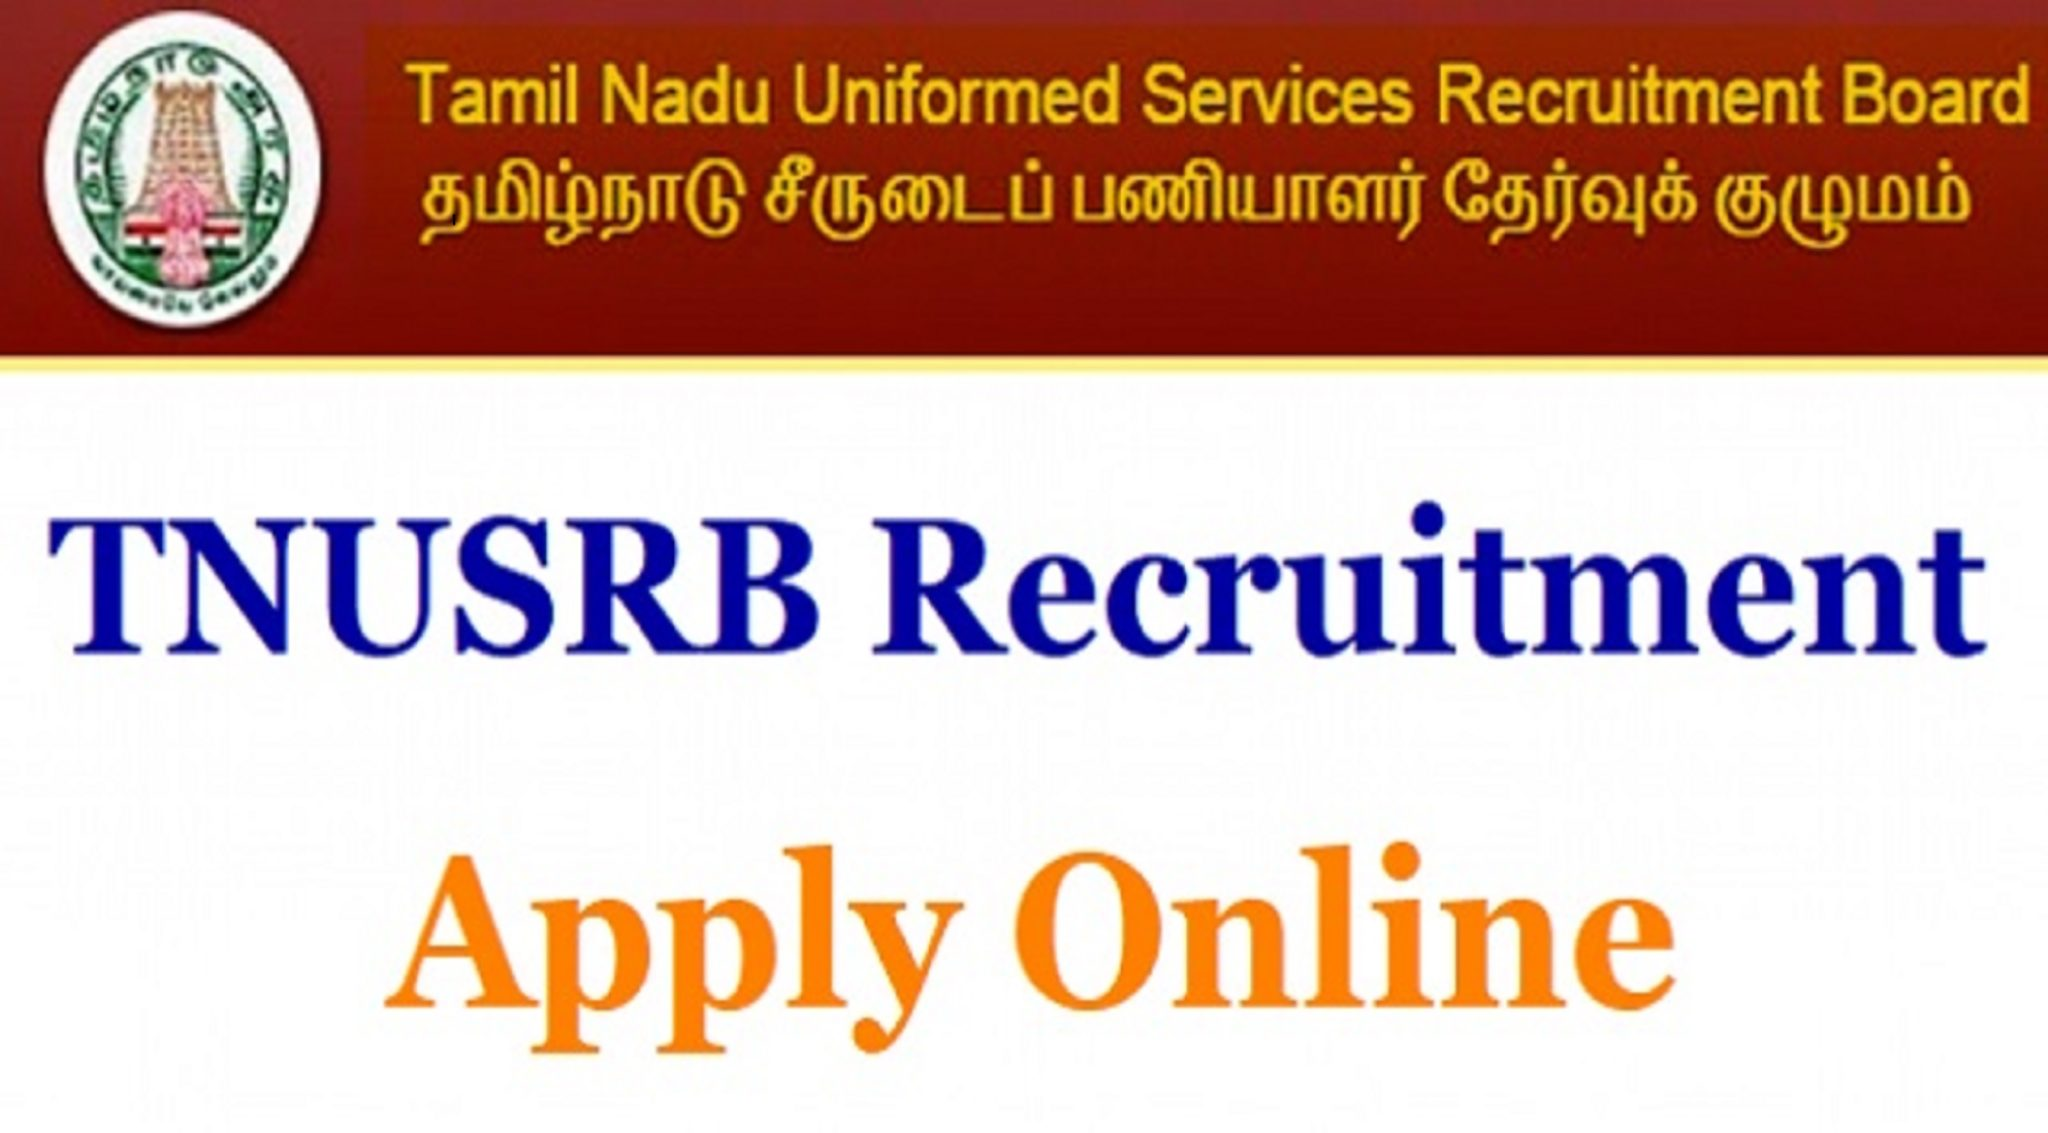 TNUSRB Recruitment 2019: Exams Likely To Be Conducted In